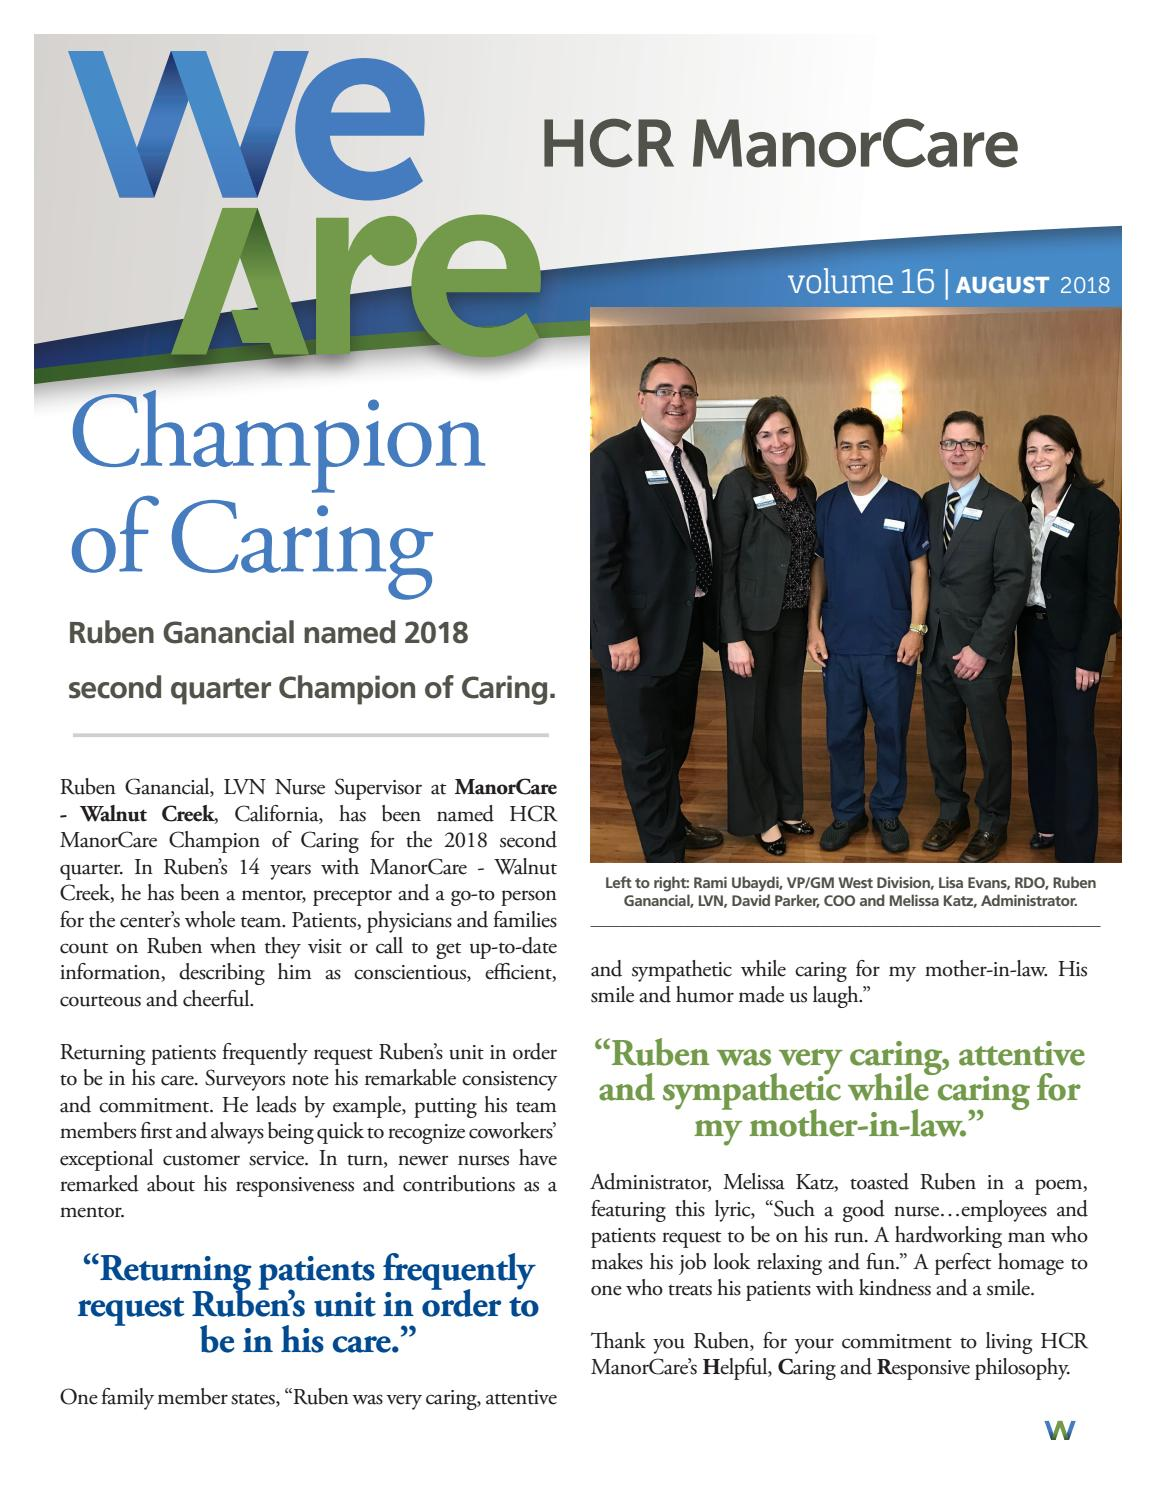 We Are Hcr Manorcare August 2018 By We Are Hcr Manorcare Issuu